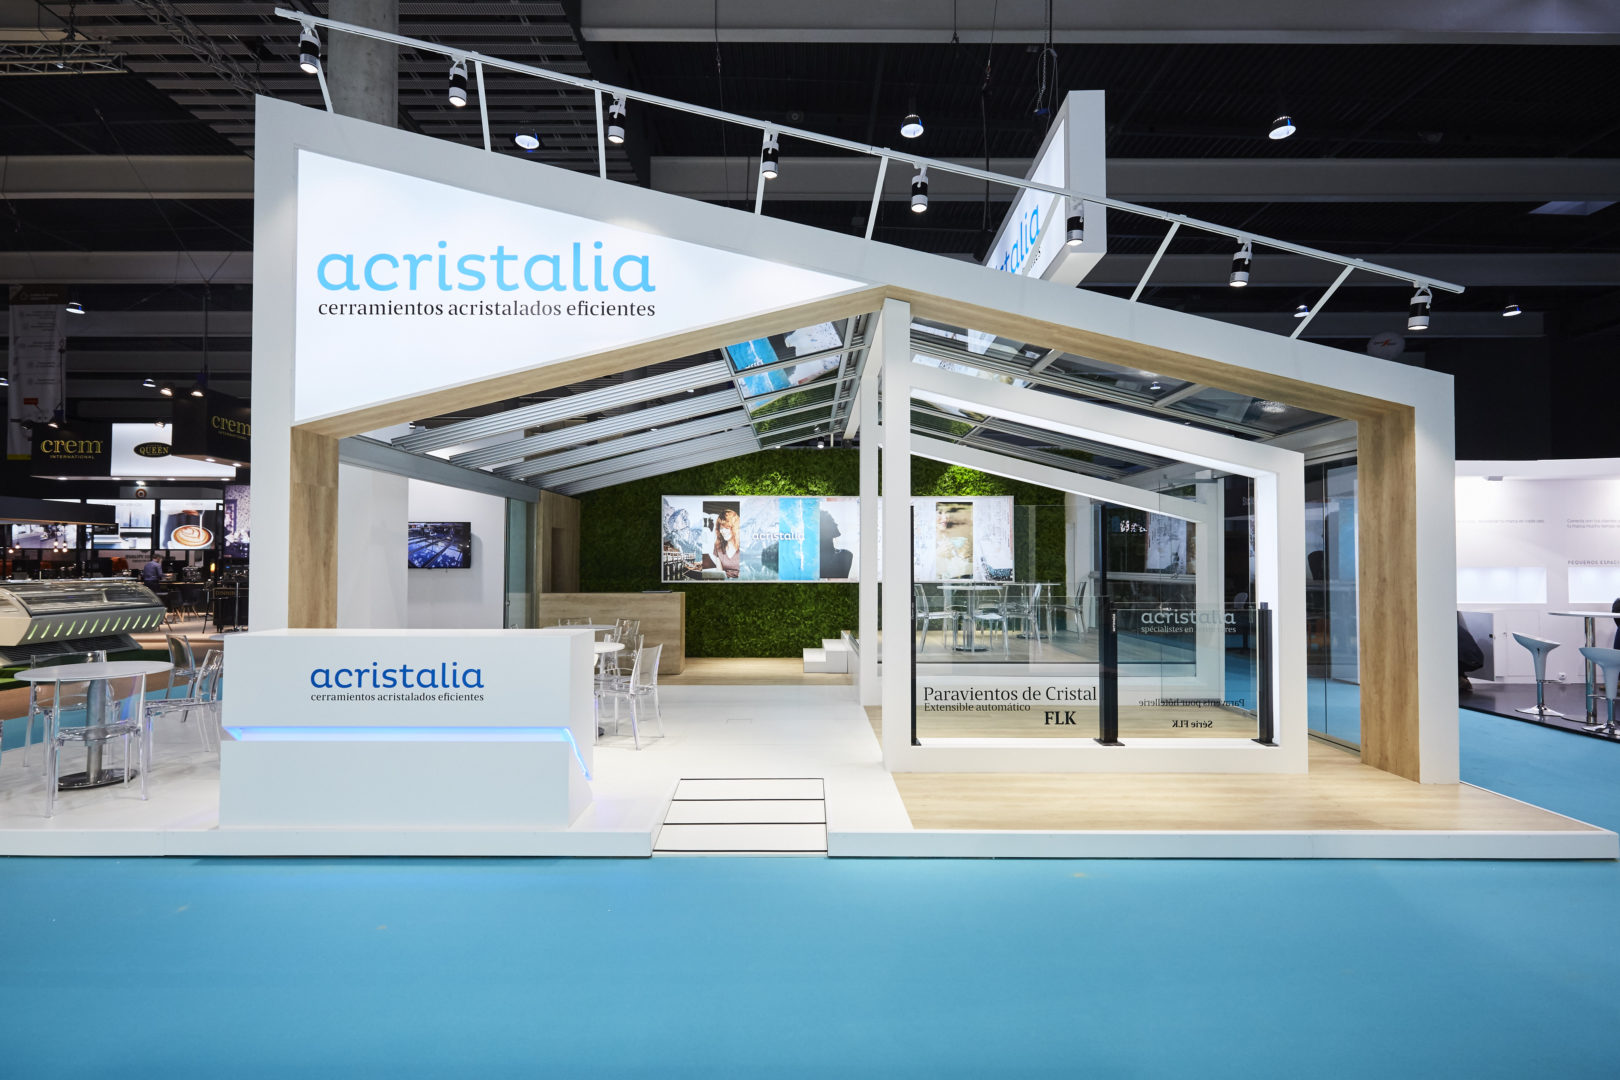 Conception et construction du stand Acristalia pour Hostelco 2018.